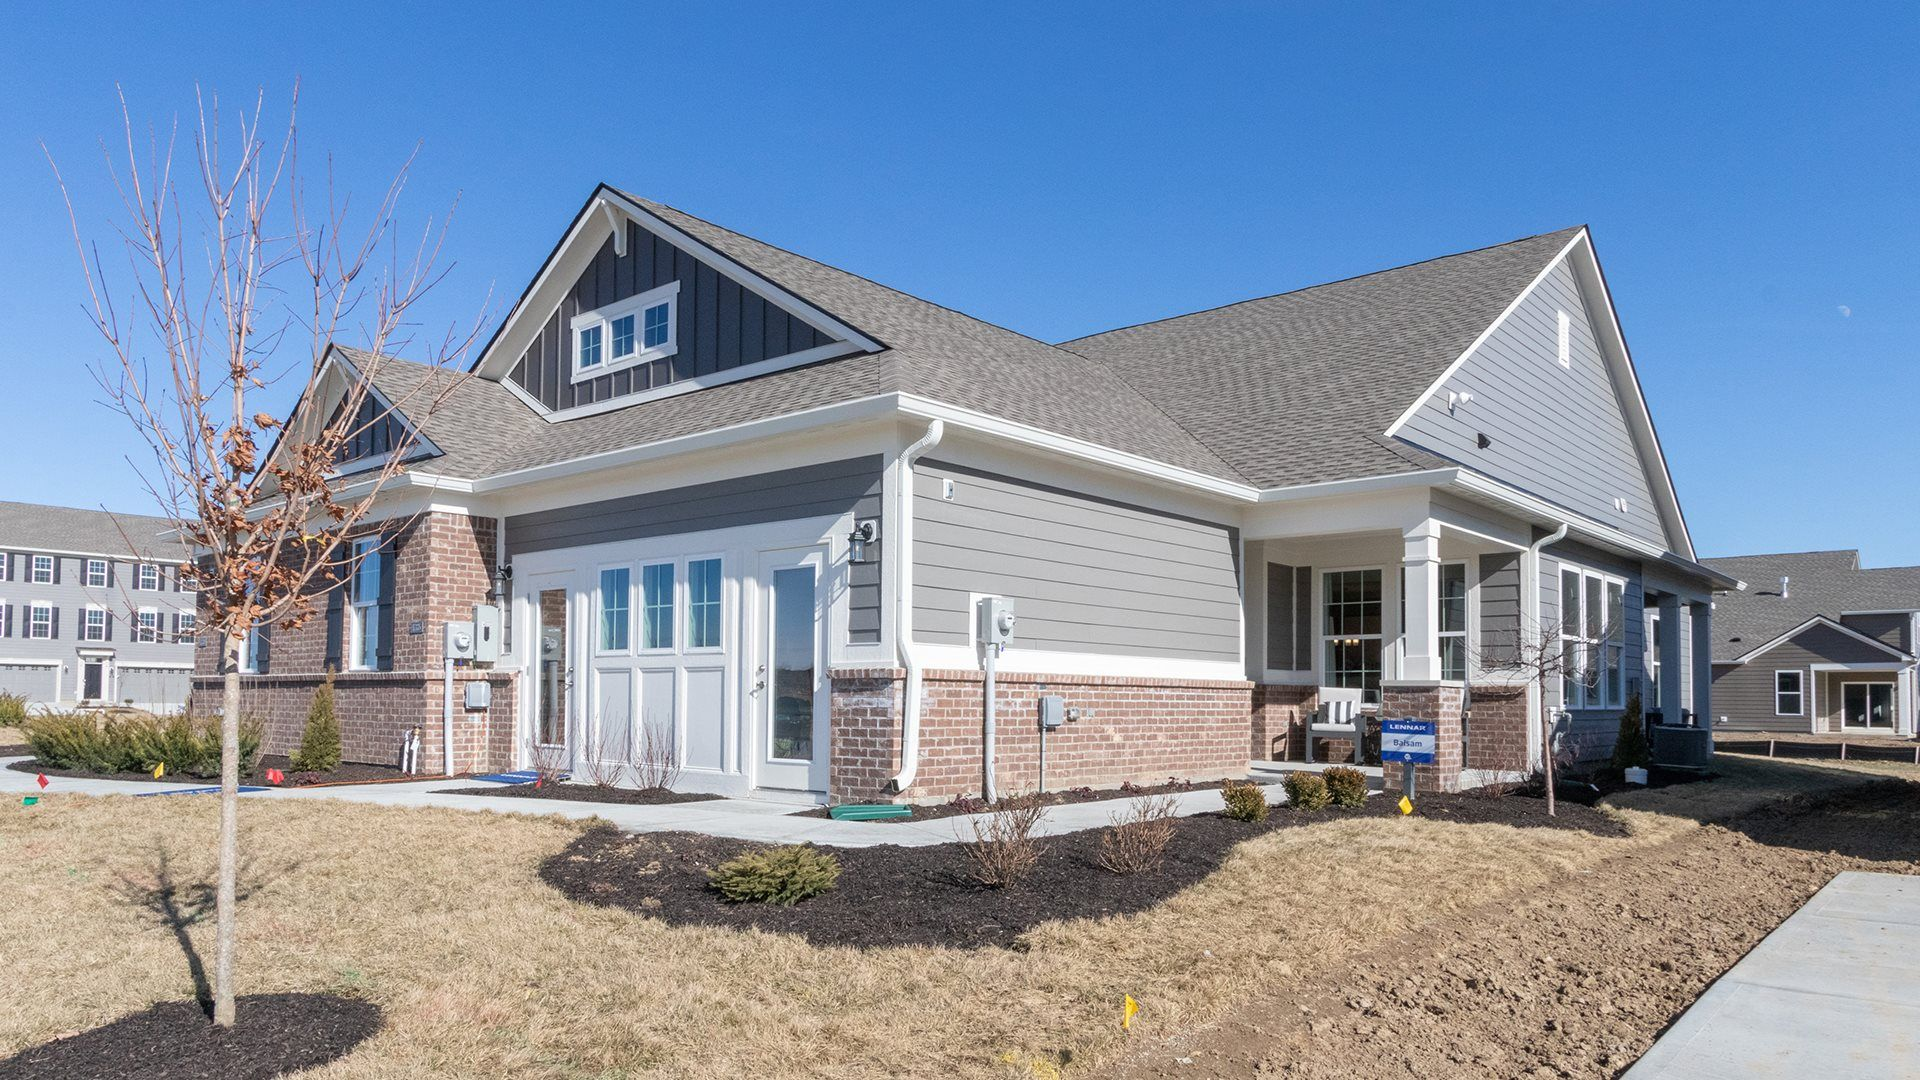 New Homes for sale in Westfield, IN by Lennar Homes